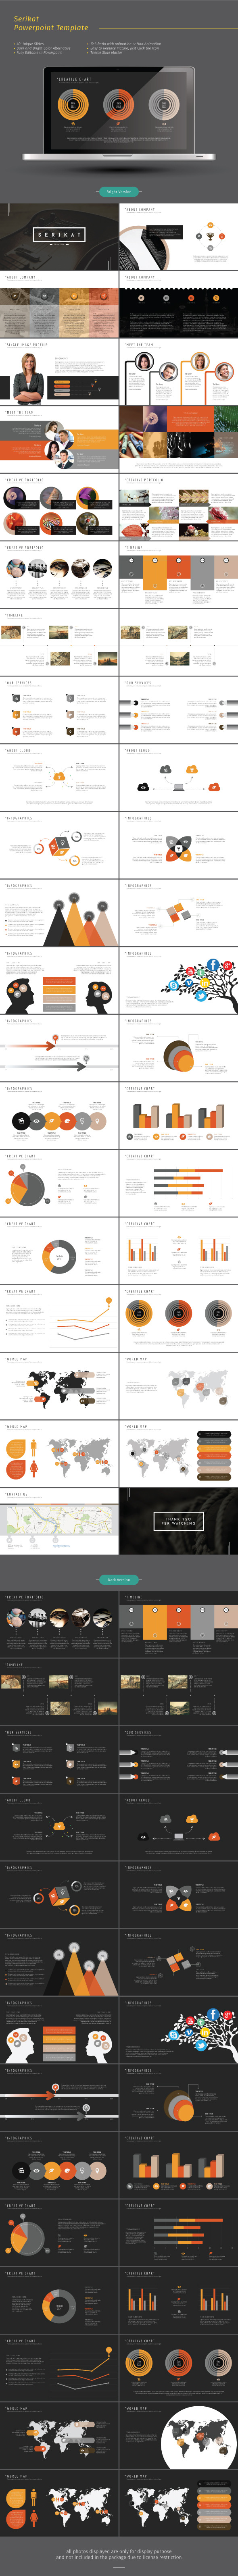 Serikat Powerpoint Template - Business PowerPoint Templates